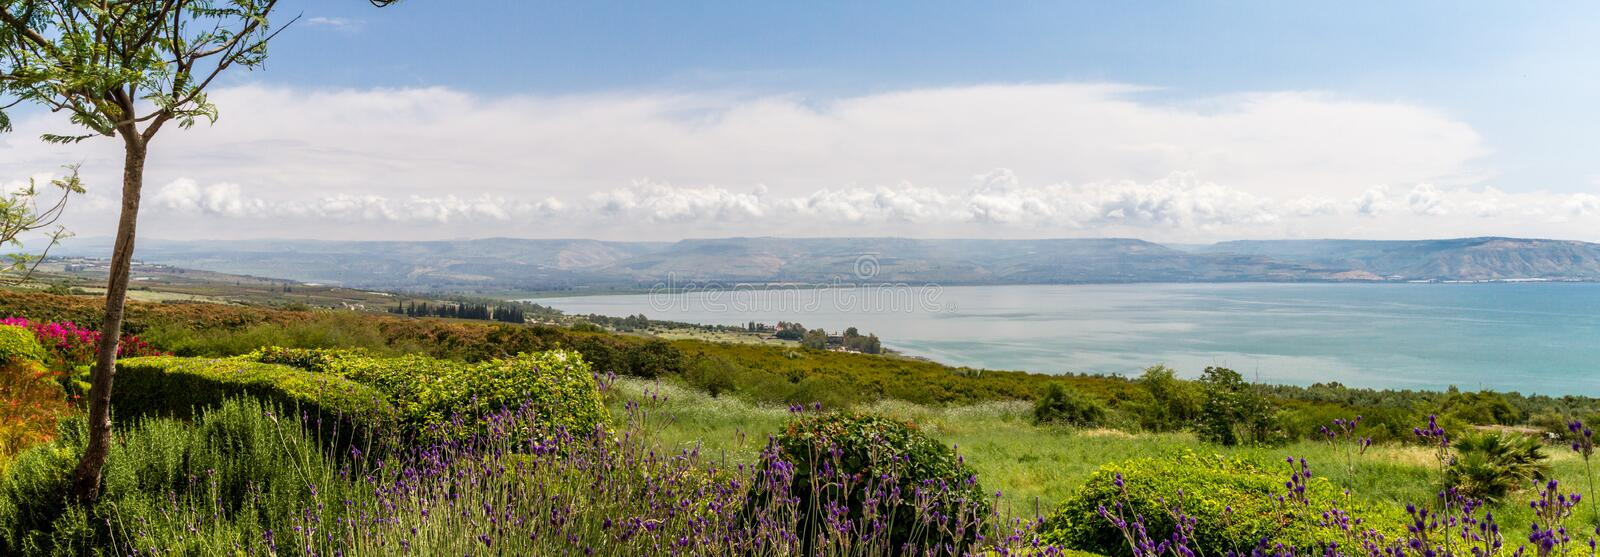 Panoramic view of the sea of Galilee from the Mount of Beatitudes, Israel royalty free stock photos